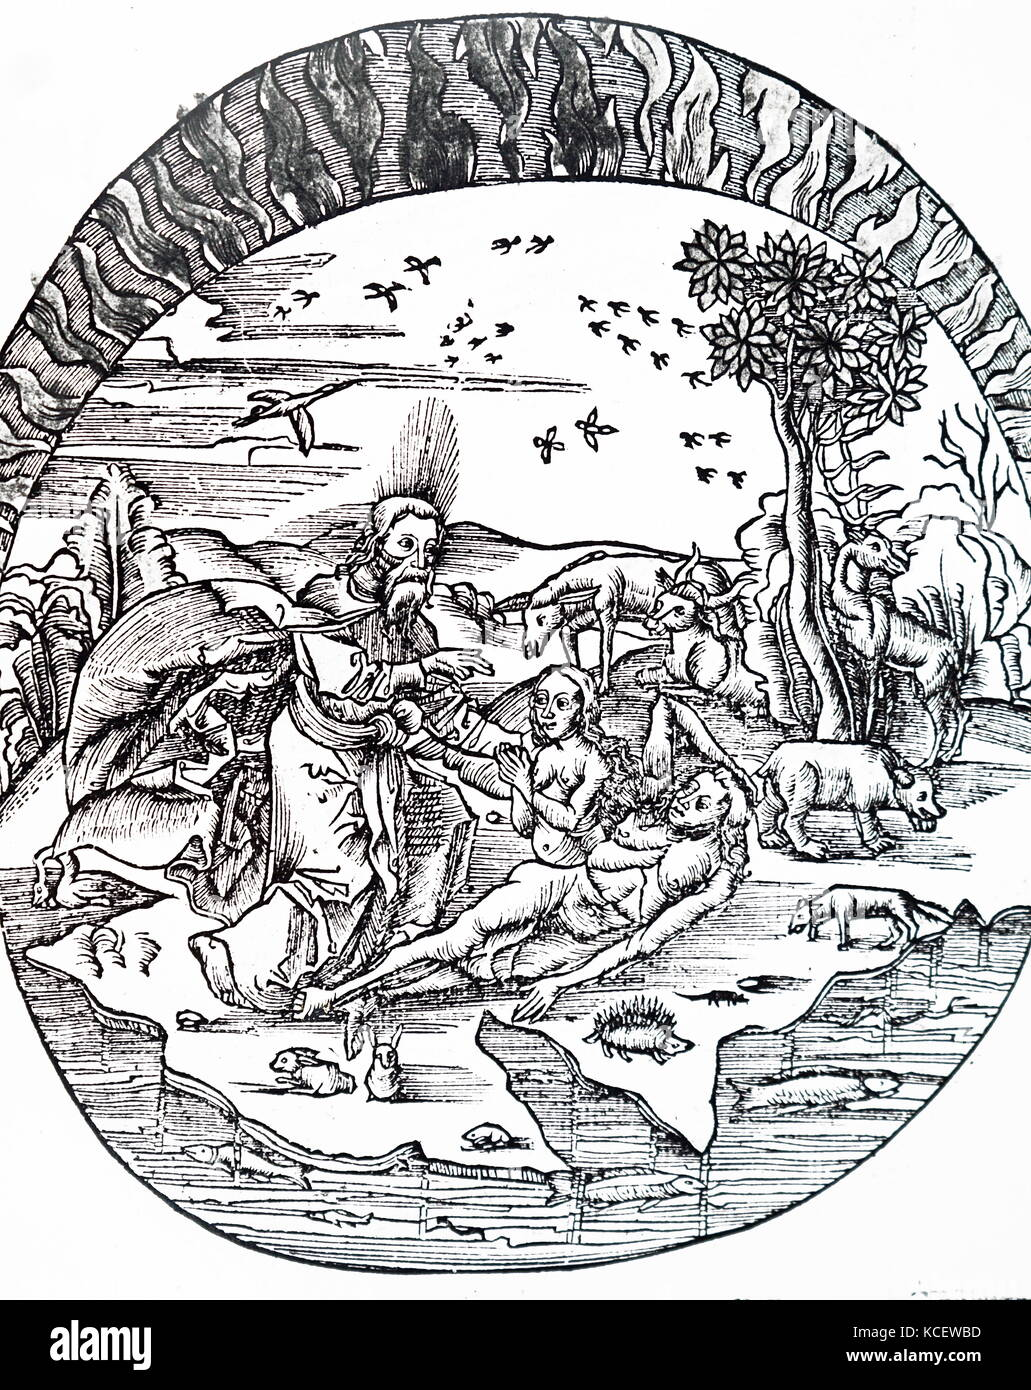 Illustration depicting Thales of Miletus' concept of a flat earth floating above water. Thales of Miletus, a - Stock Image